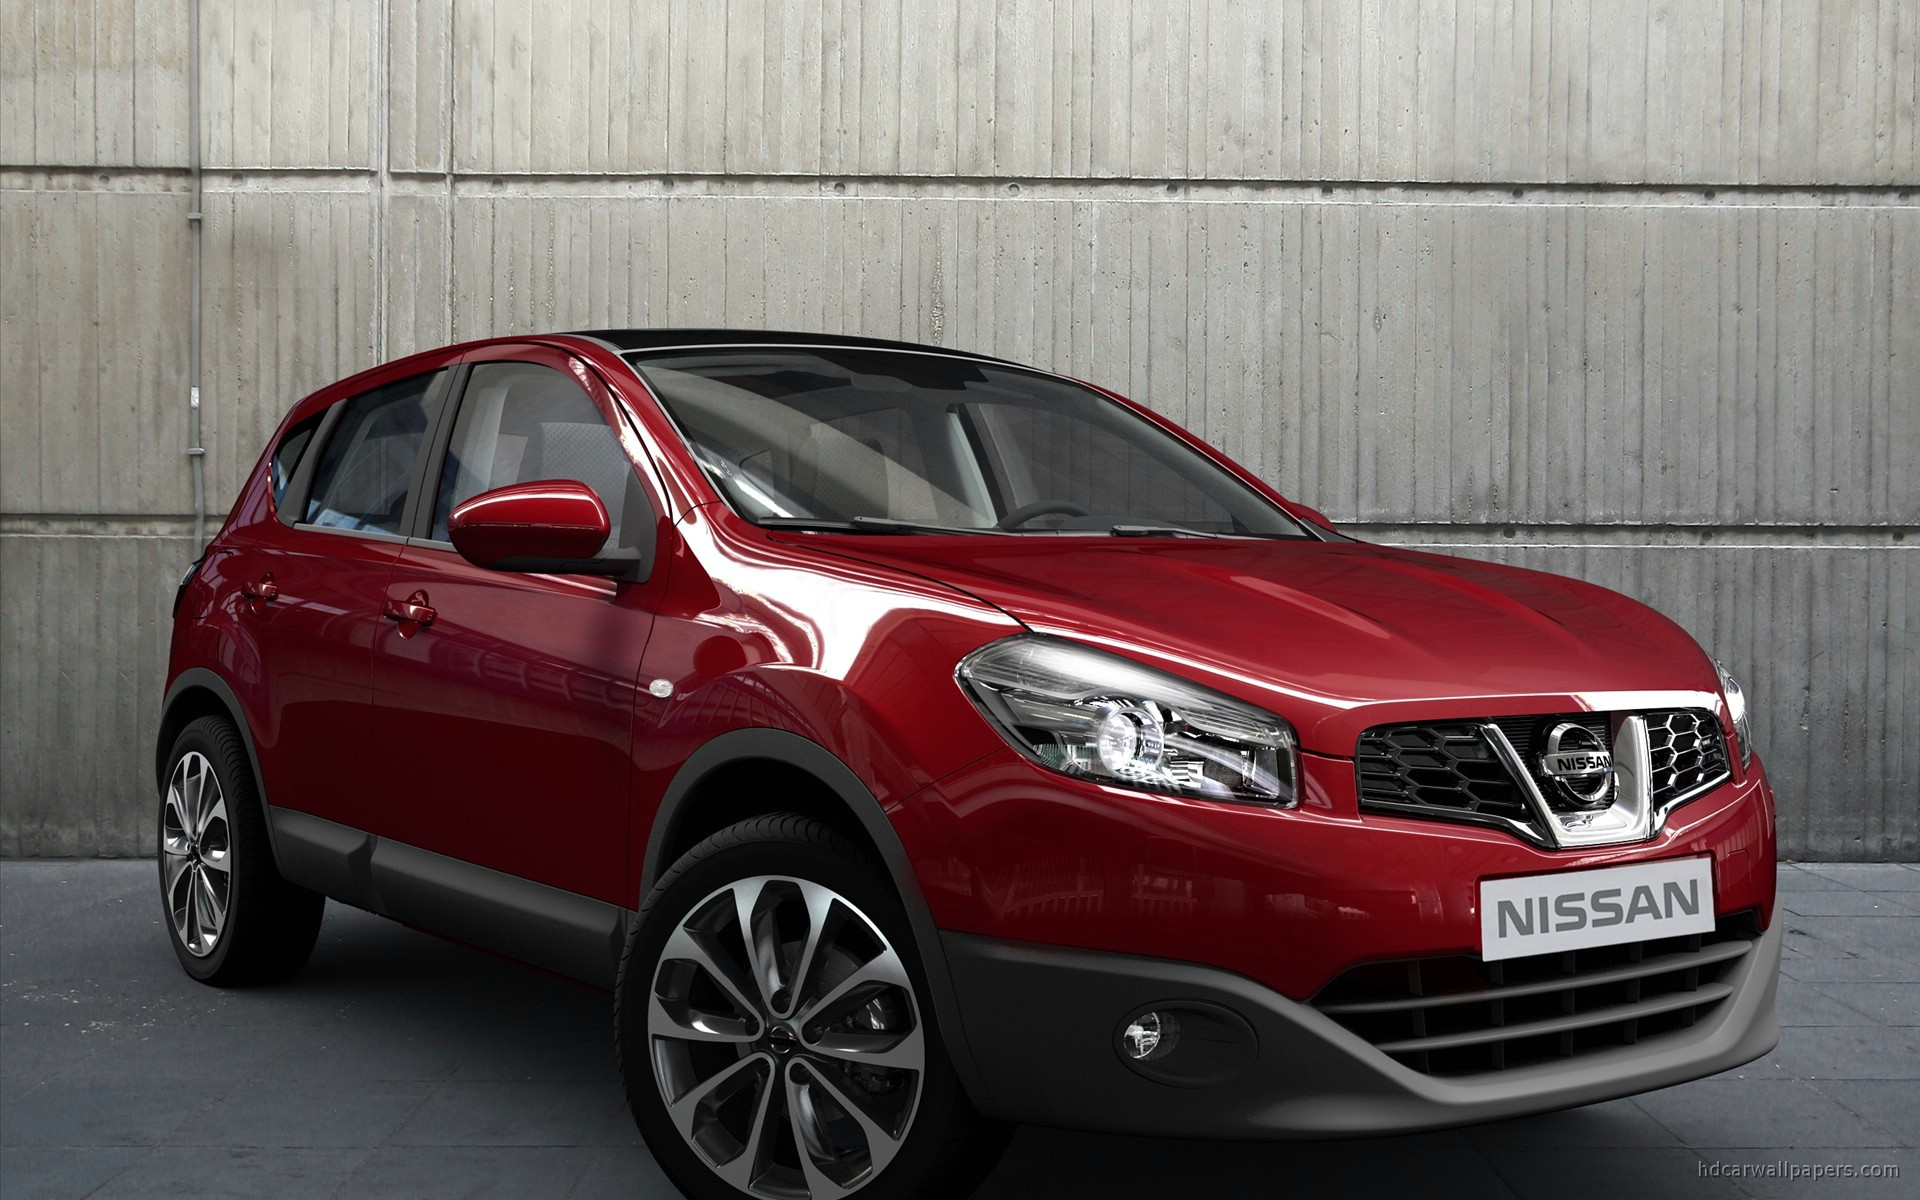 2010 nissan qashqai crossover 3 wallpaper hd car. Black Bedroom Furniture Sets. Home Design Ideas